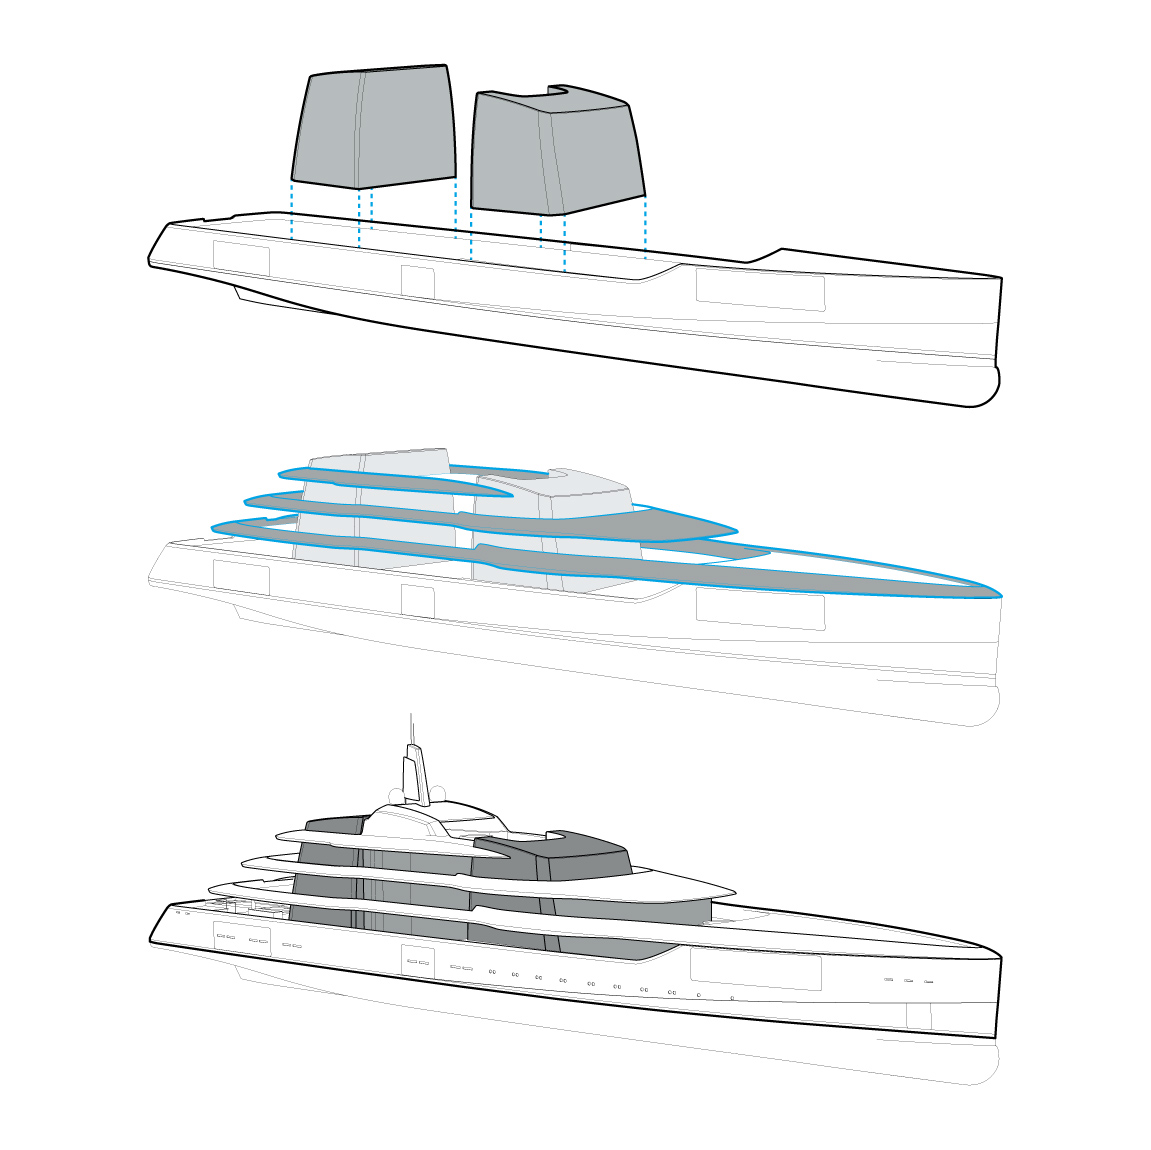 Latest 92m Project Lumen Yacht By Adam Voorhees